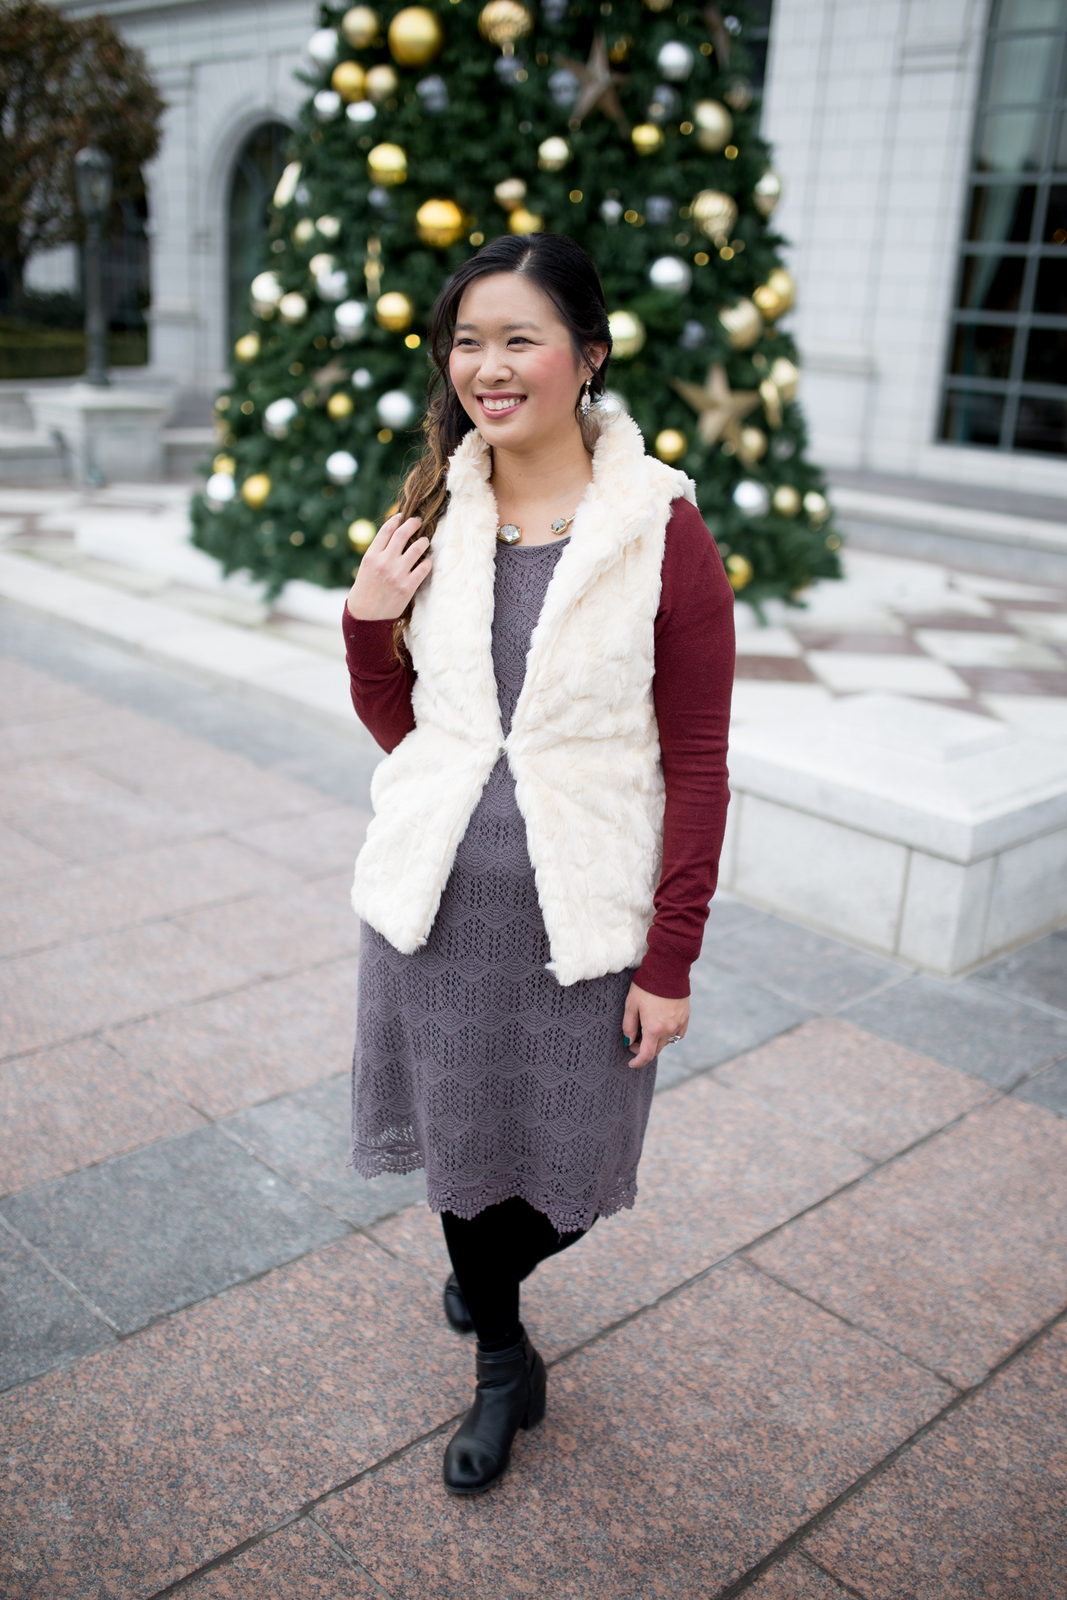 Fur vest over dress holiday style